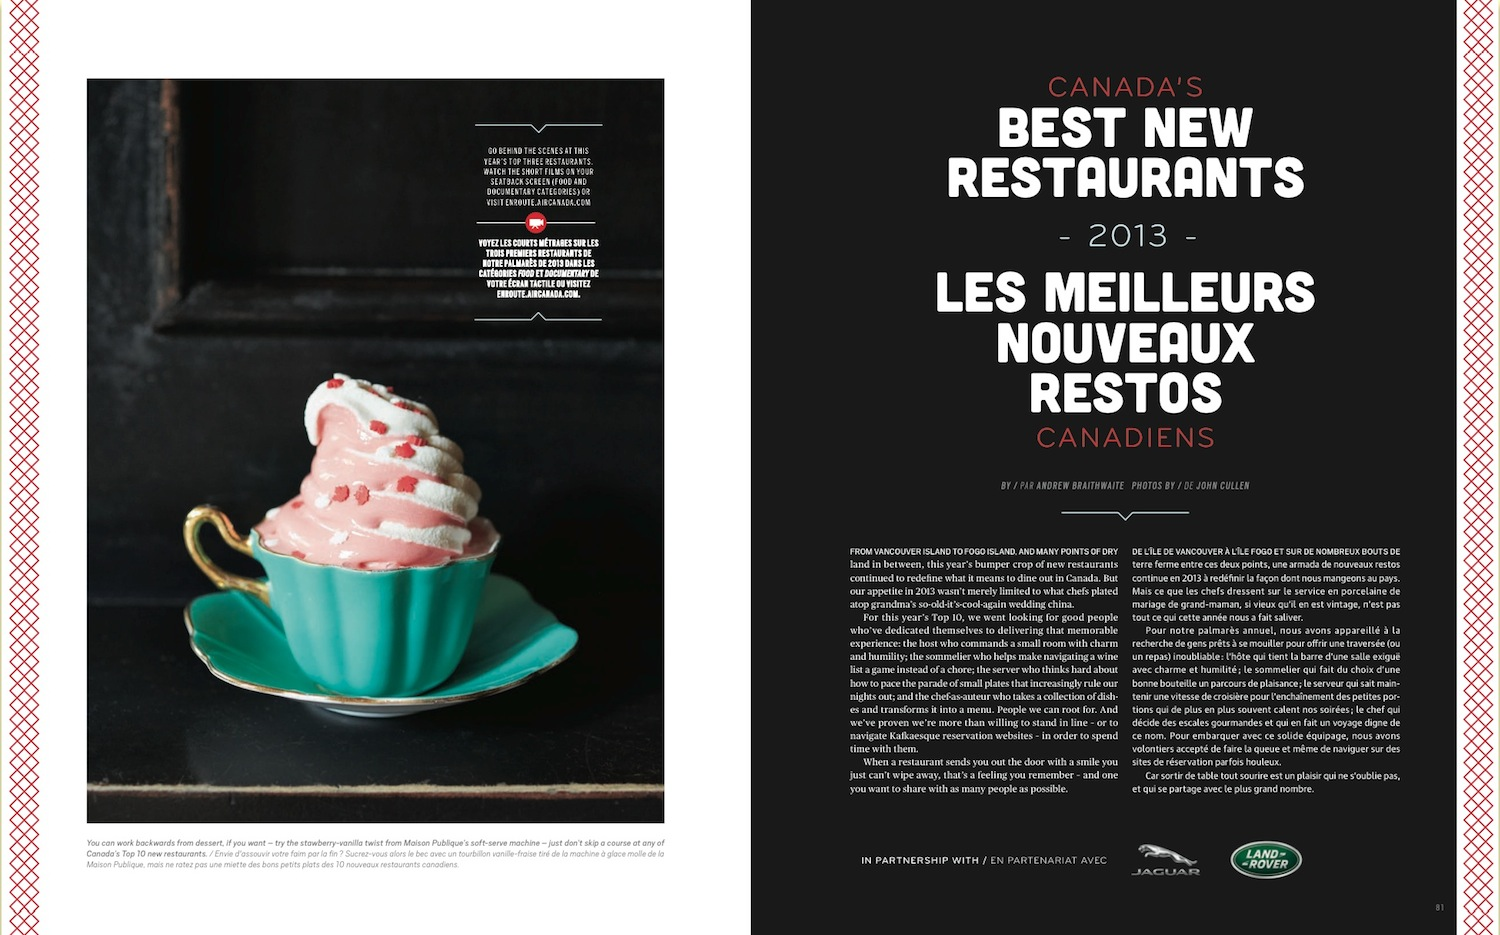 Canada's Best New Restaurants  //  enRoute  //  2013  //  web   (National Magazine Awards winner)